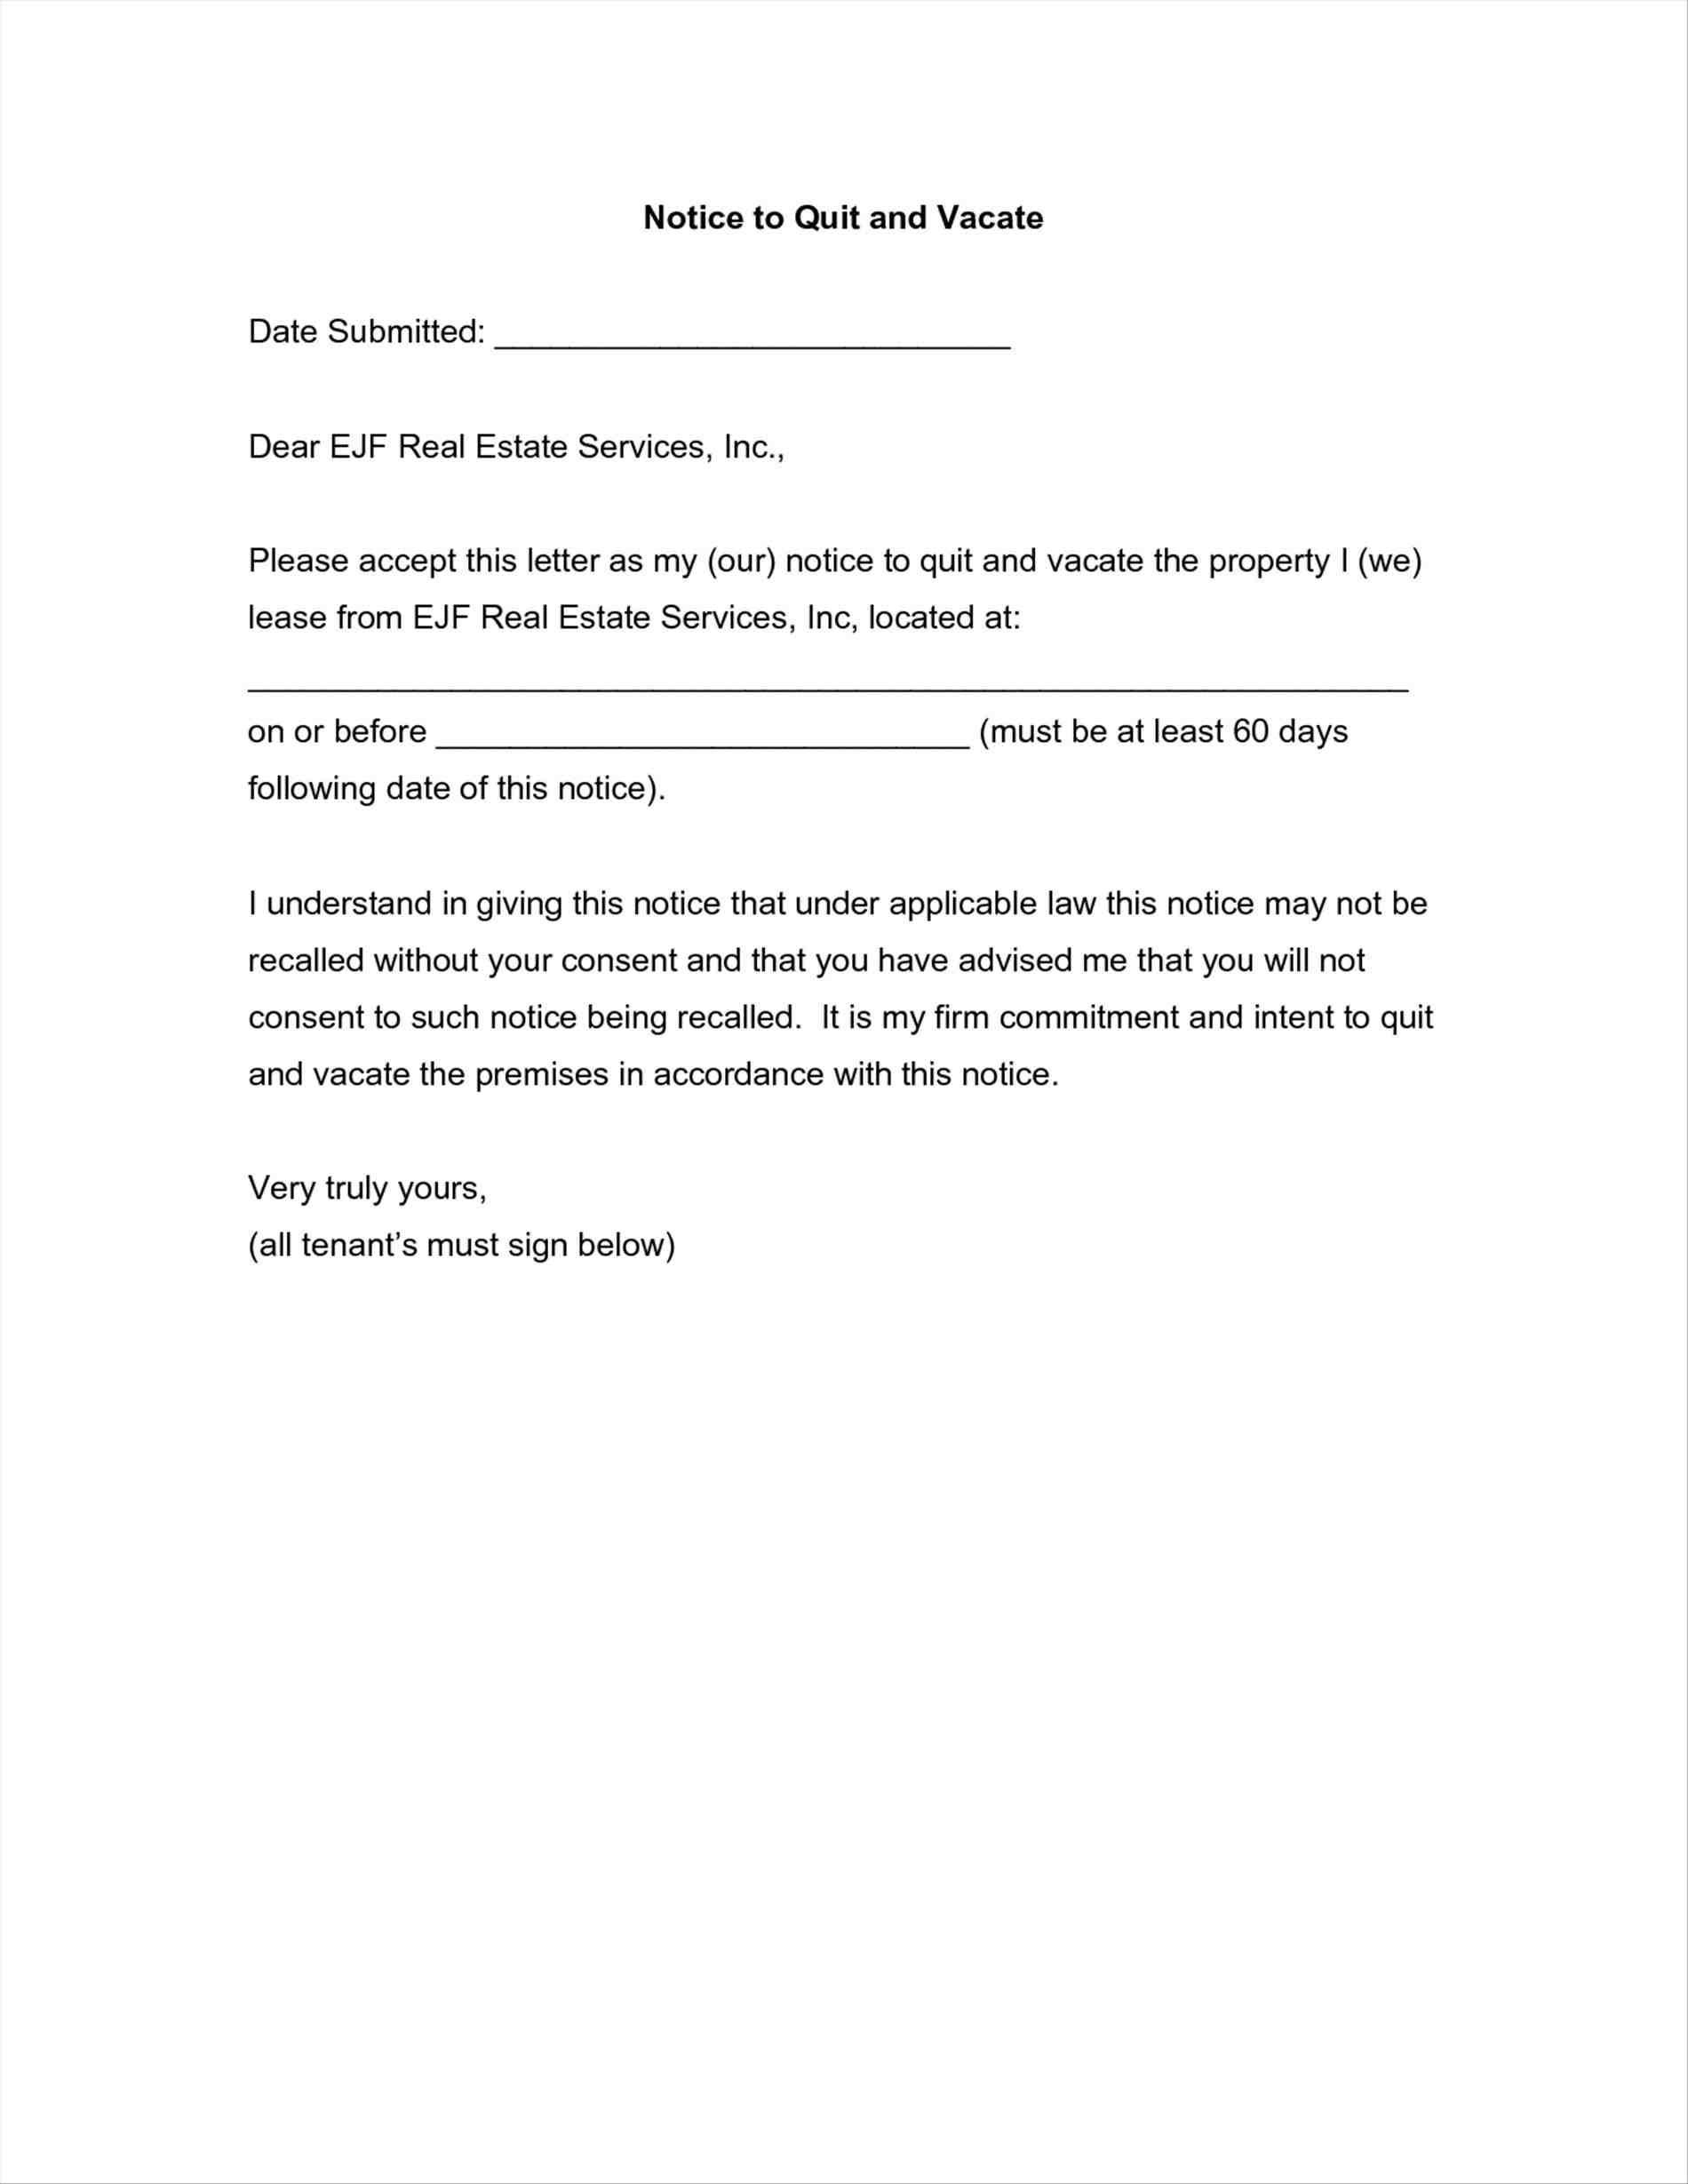 Tenancy Notice Letter Template - Giving Notice to Landlord Template